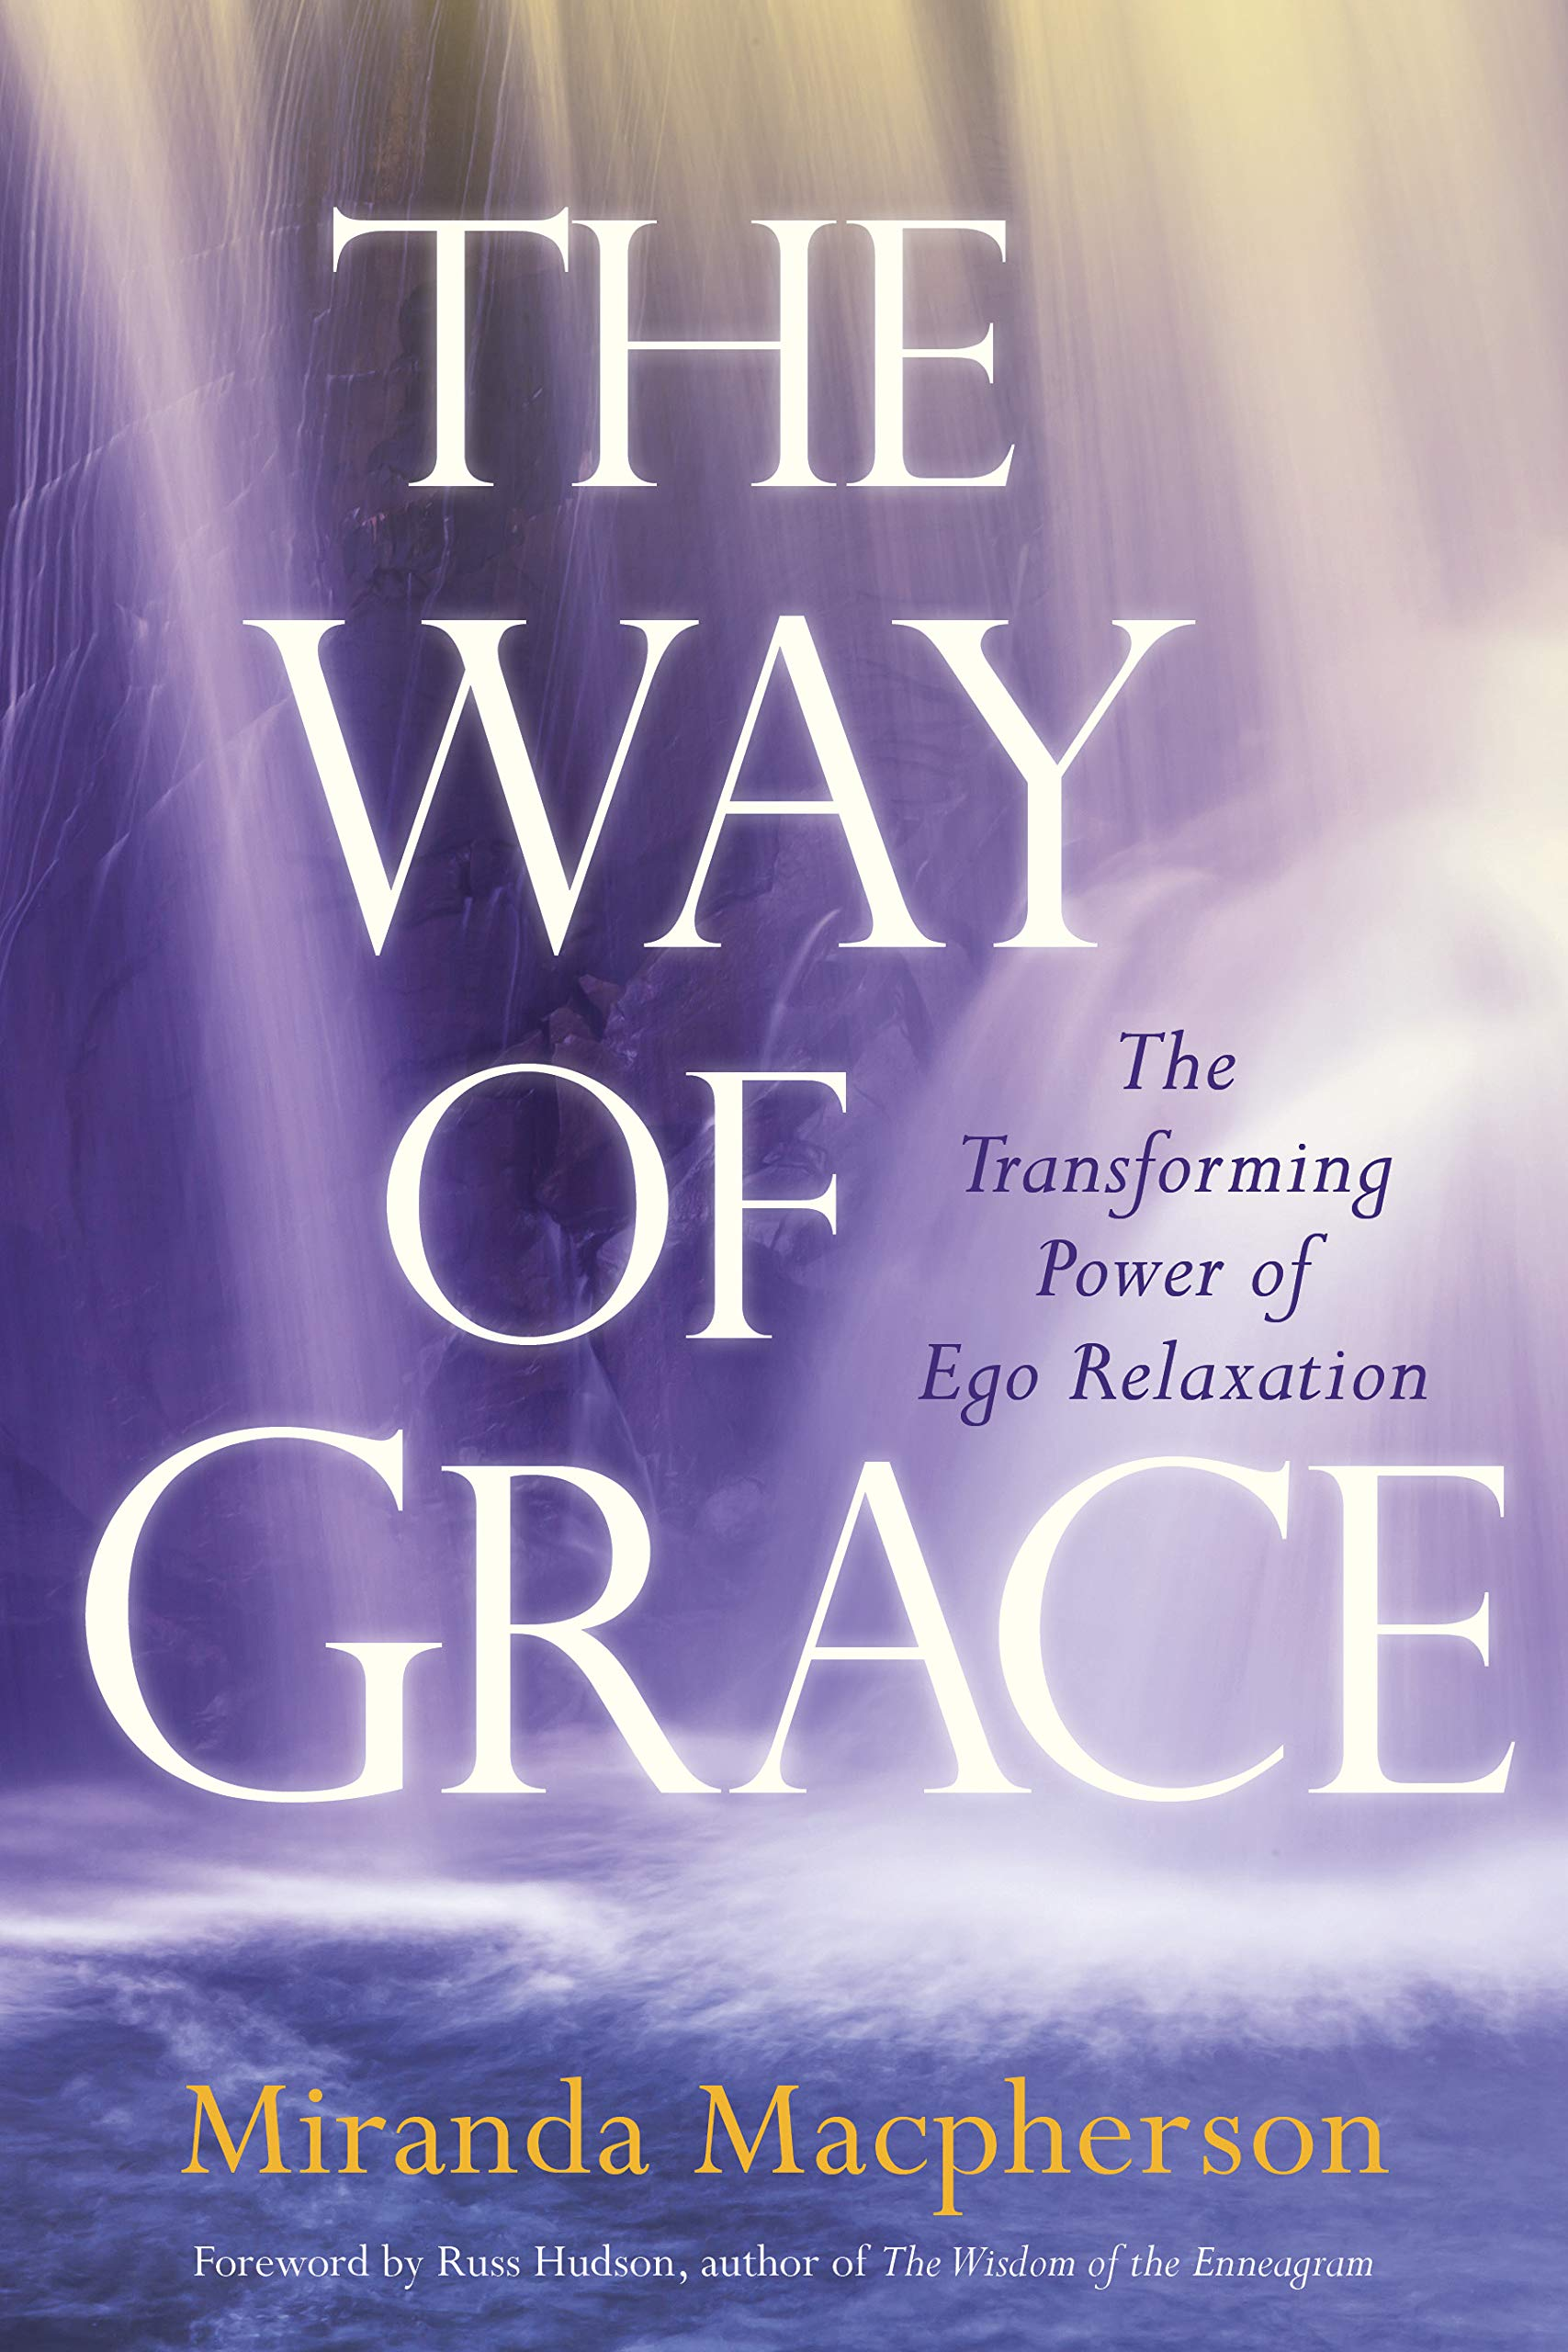 The Way of Grace: The Transforming Power of Ego Relaxation: Miranda  Macpherson, Russ Hudson: 9781683641308: Amazon.com: Books